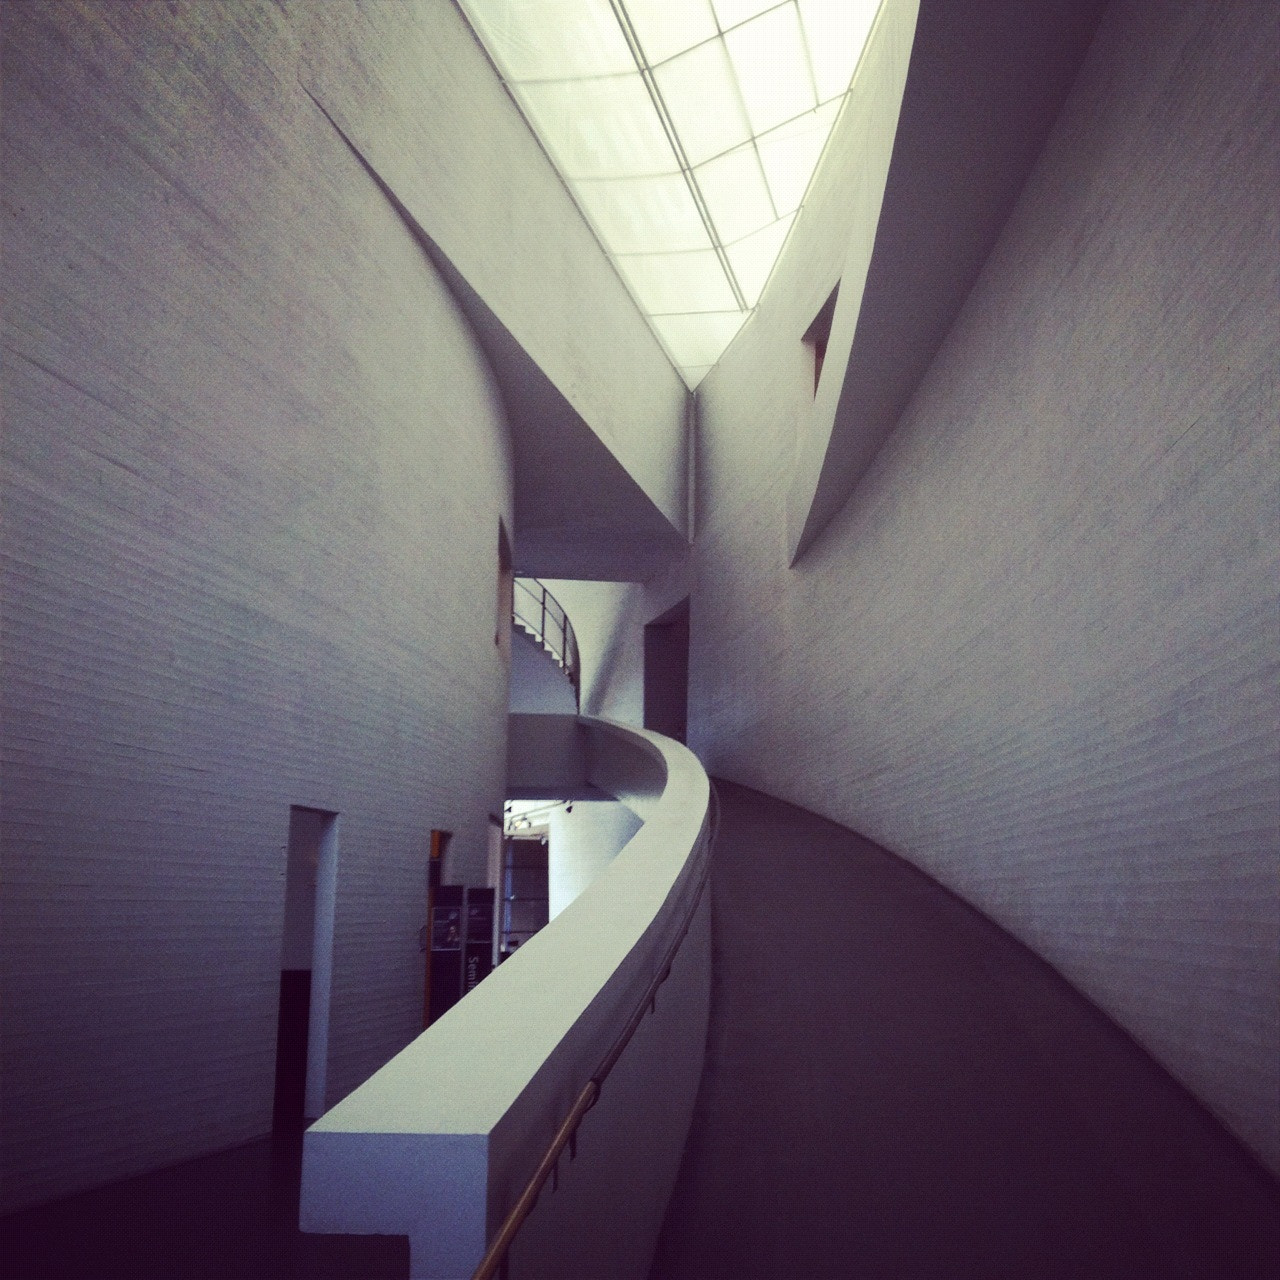 Photograph Kiasma  by Hanan Lehr on 500px